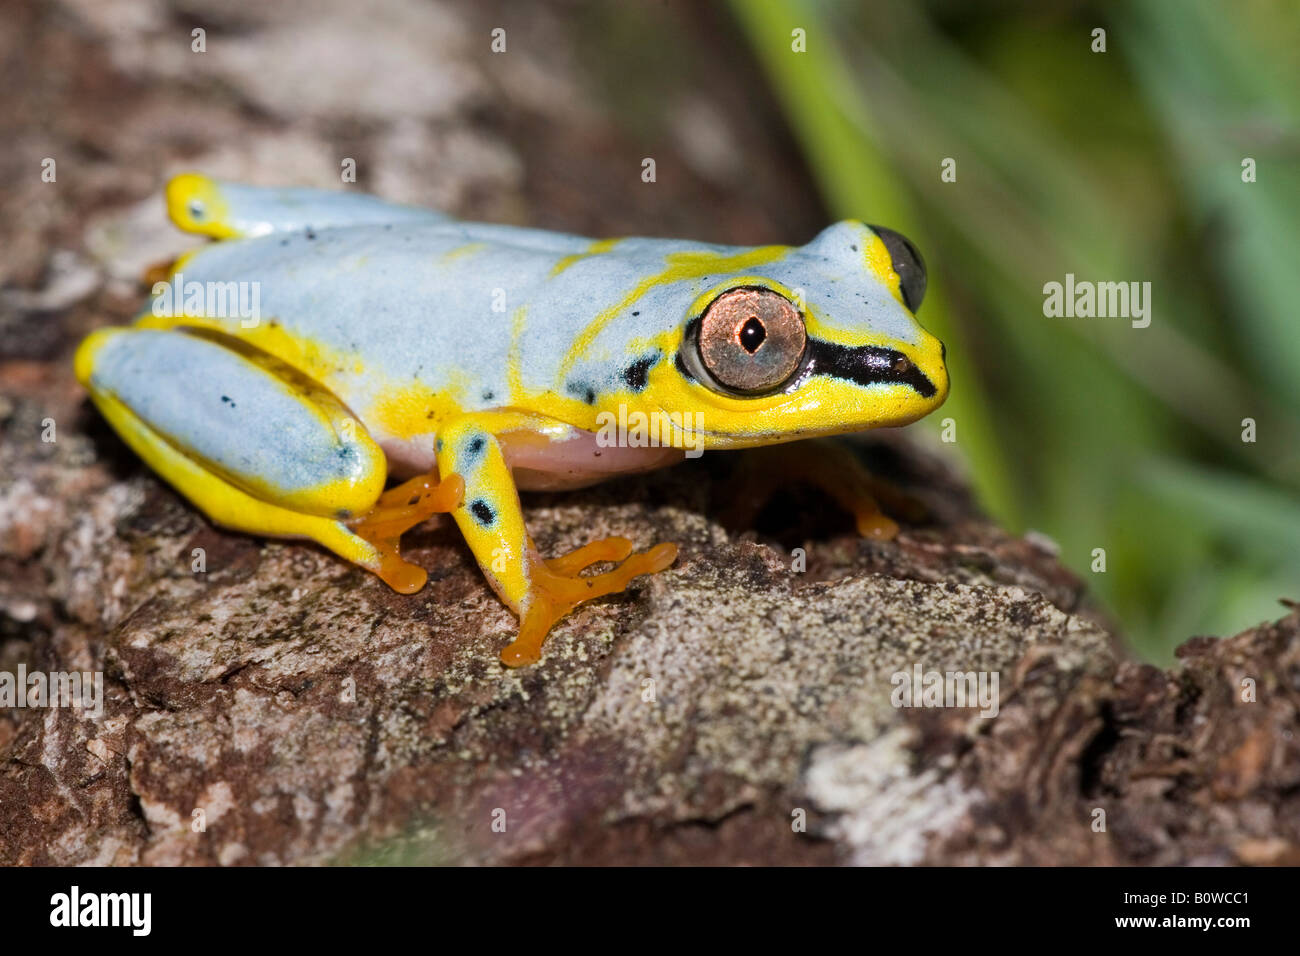 Madagascan Lined, White-Lined or Spotted Reed Frog (Heterixalus punctatus), Madagascar, Africa Stock Photo